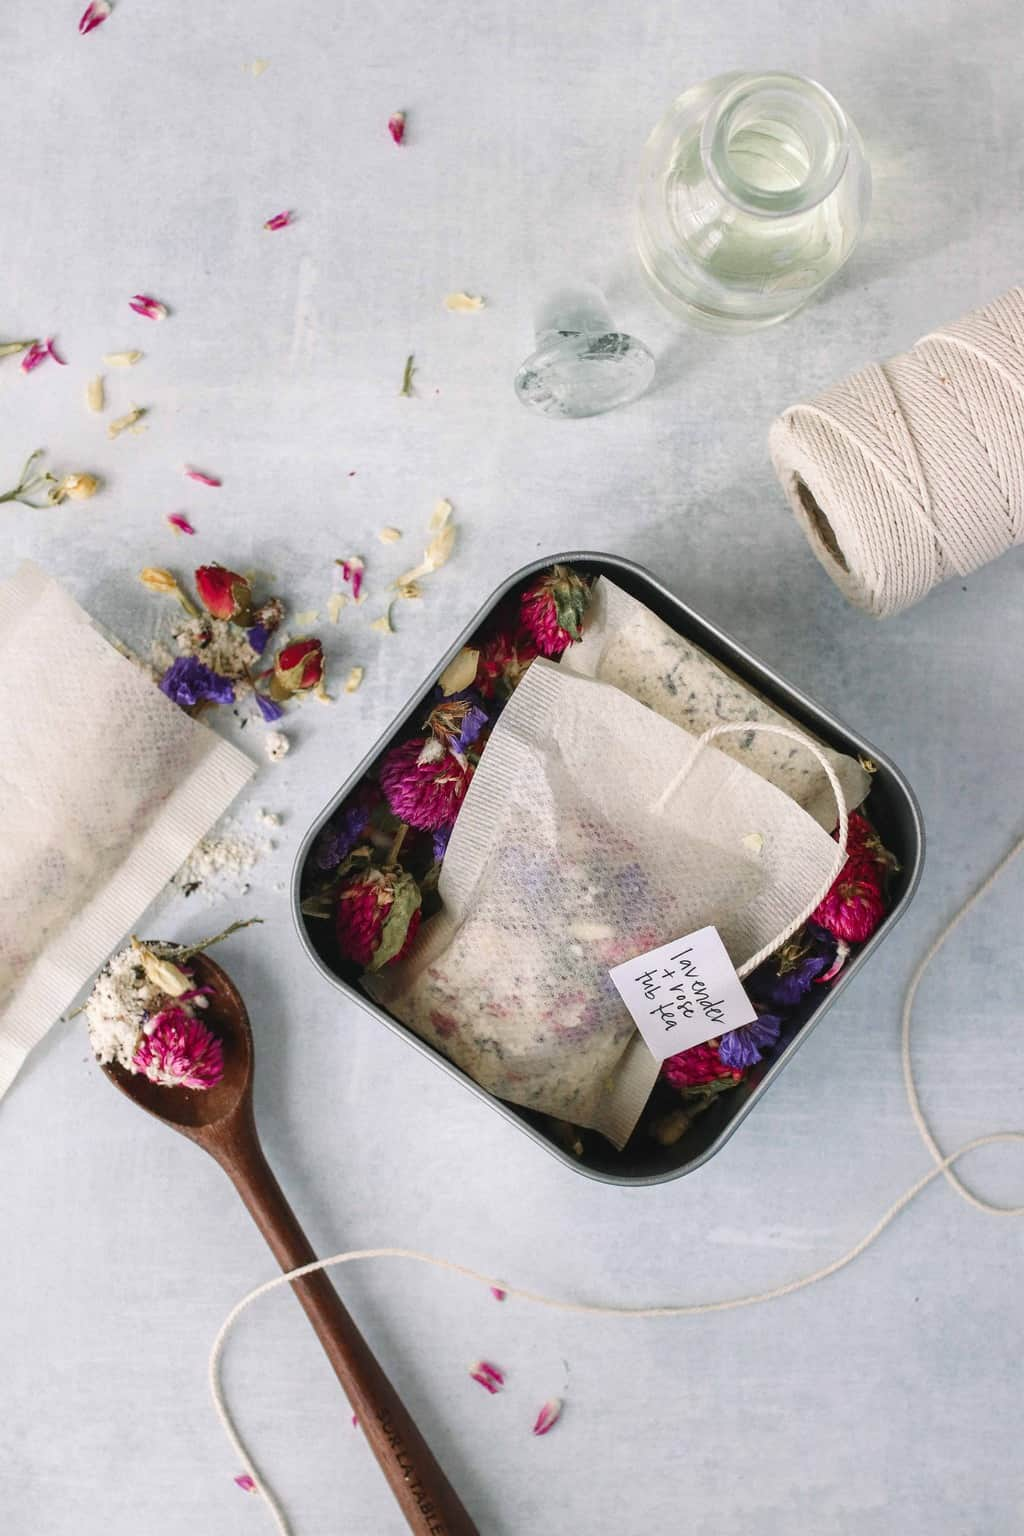 A Last Minute DIY Holiday Gift: Relaxing Floral Tub Tea